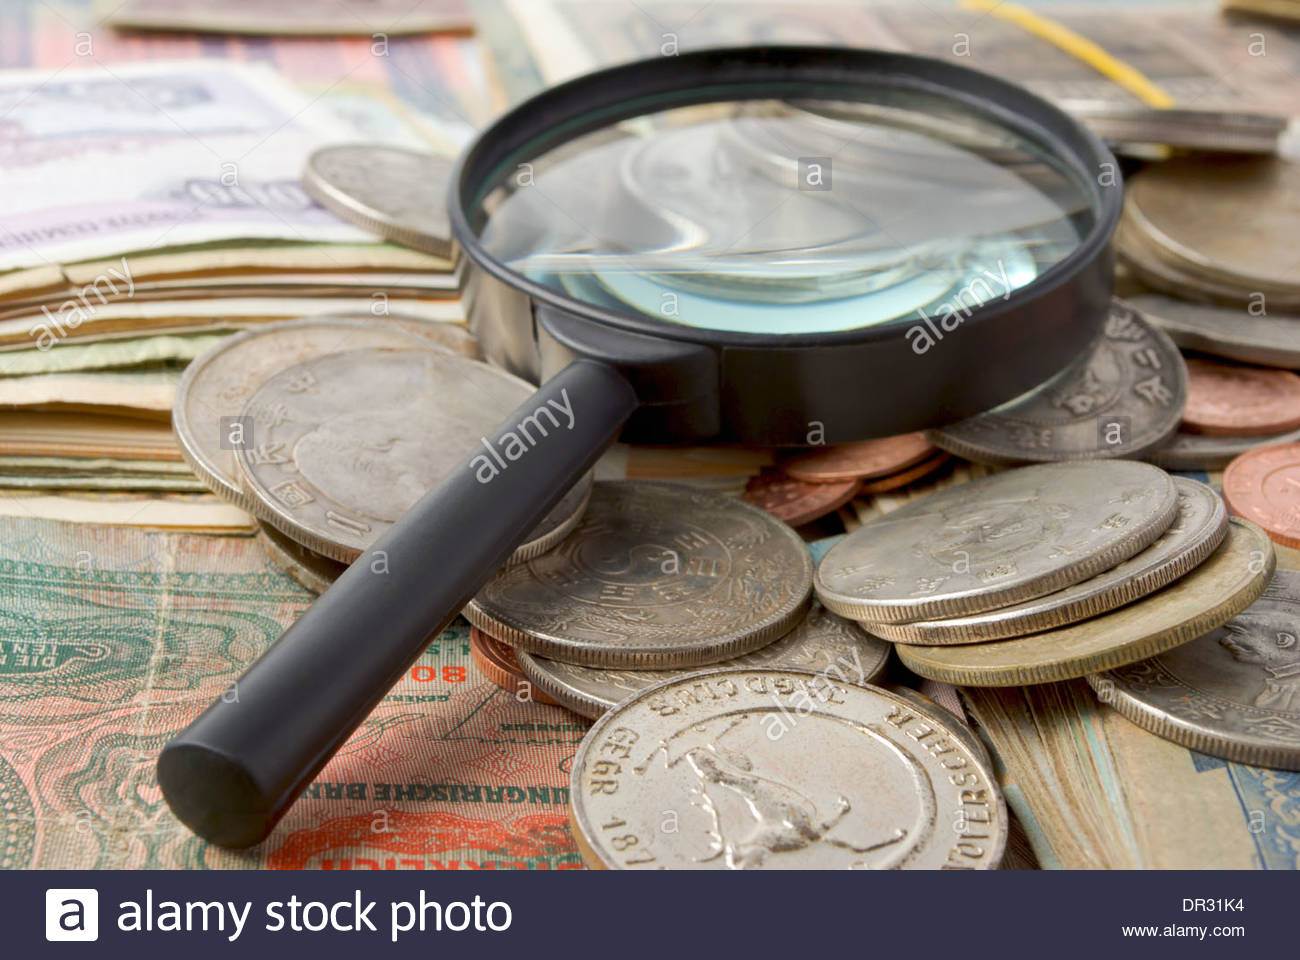 Still life of magnifying glass, coins and banknotes. - Stock Image